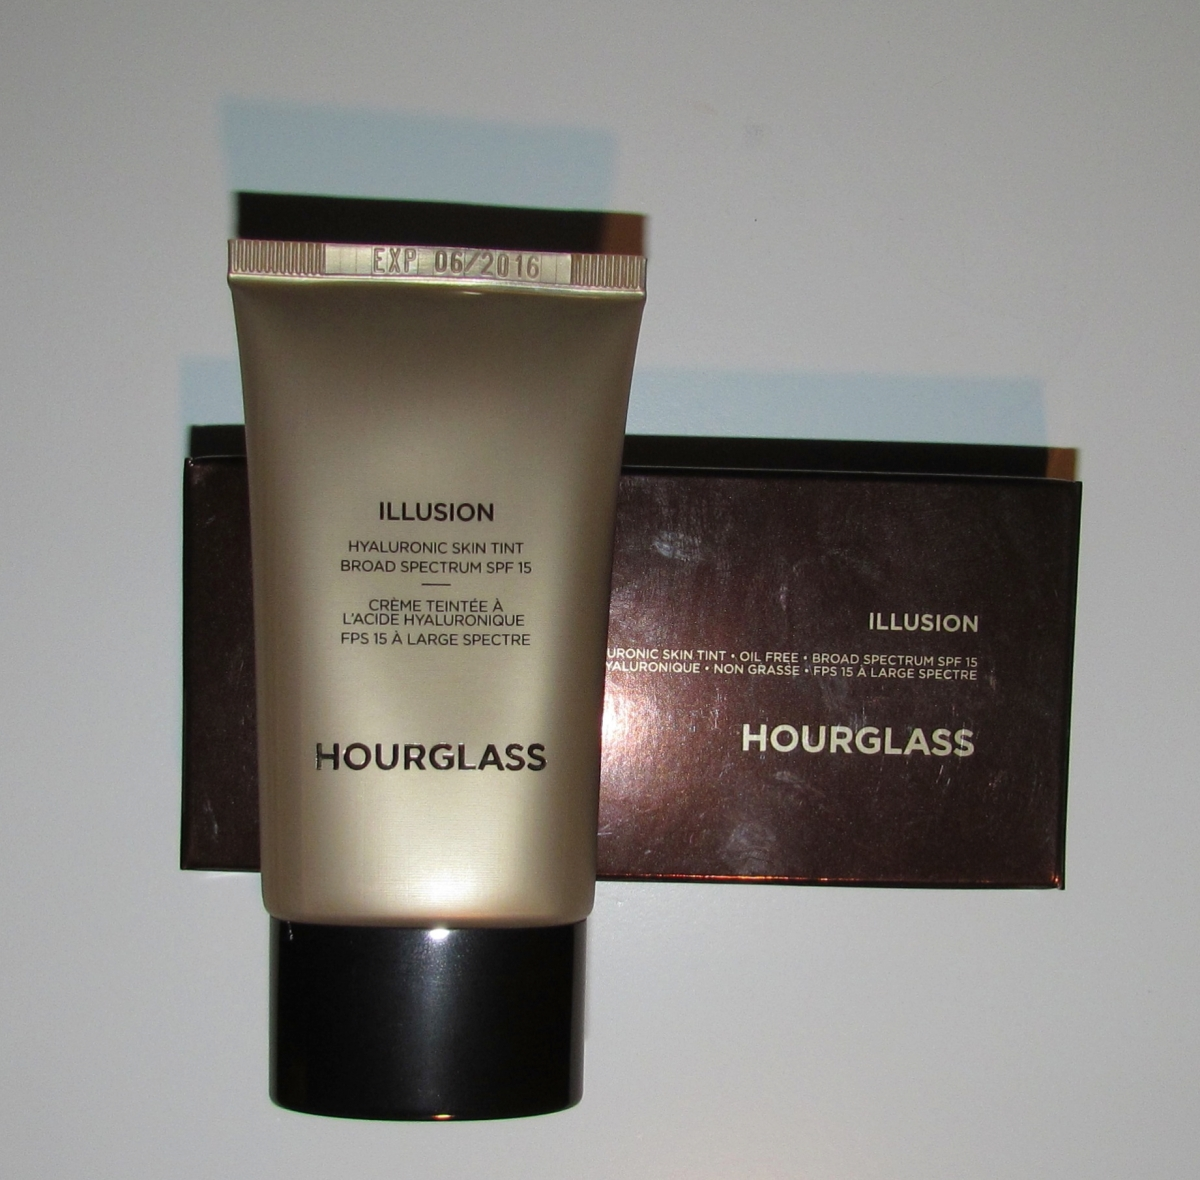 Hourglass Illusion Hyaluronic Skin Tint in Shell: Review